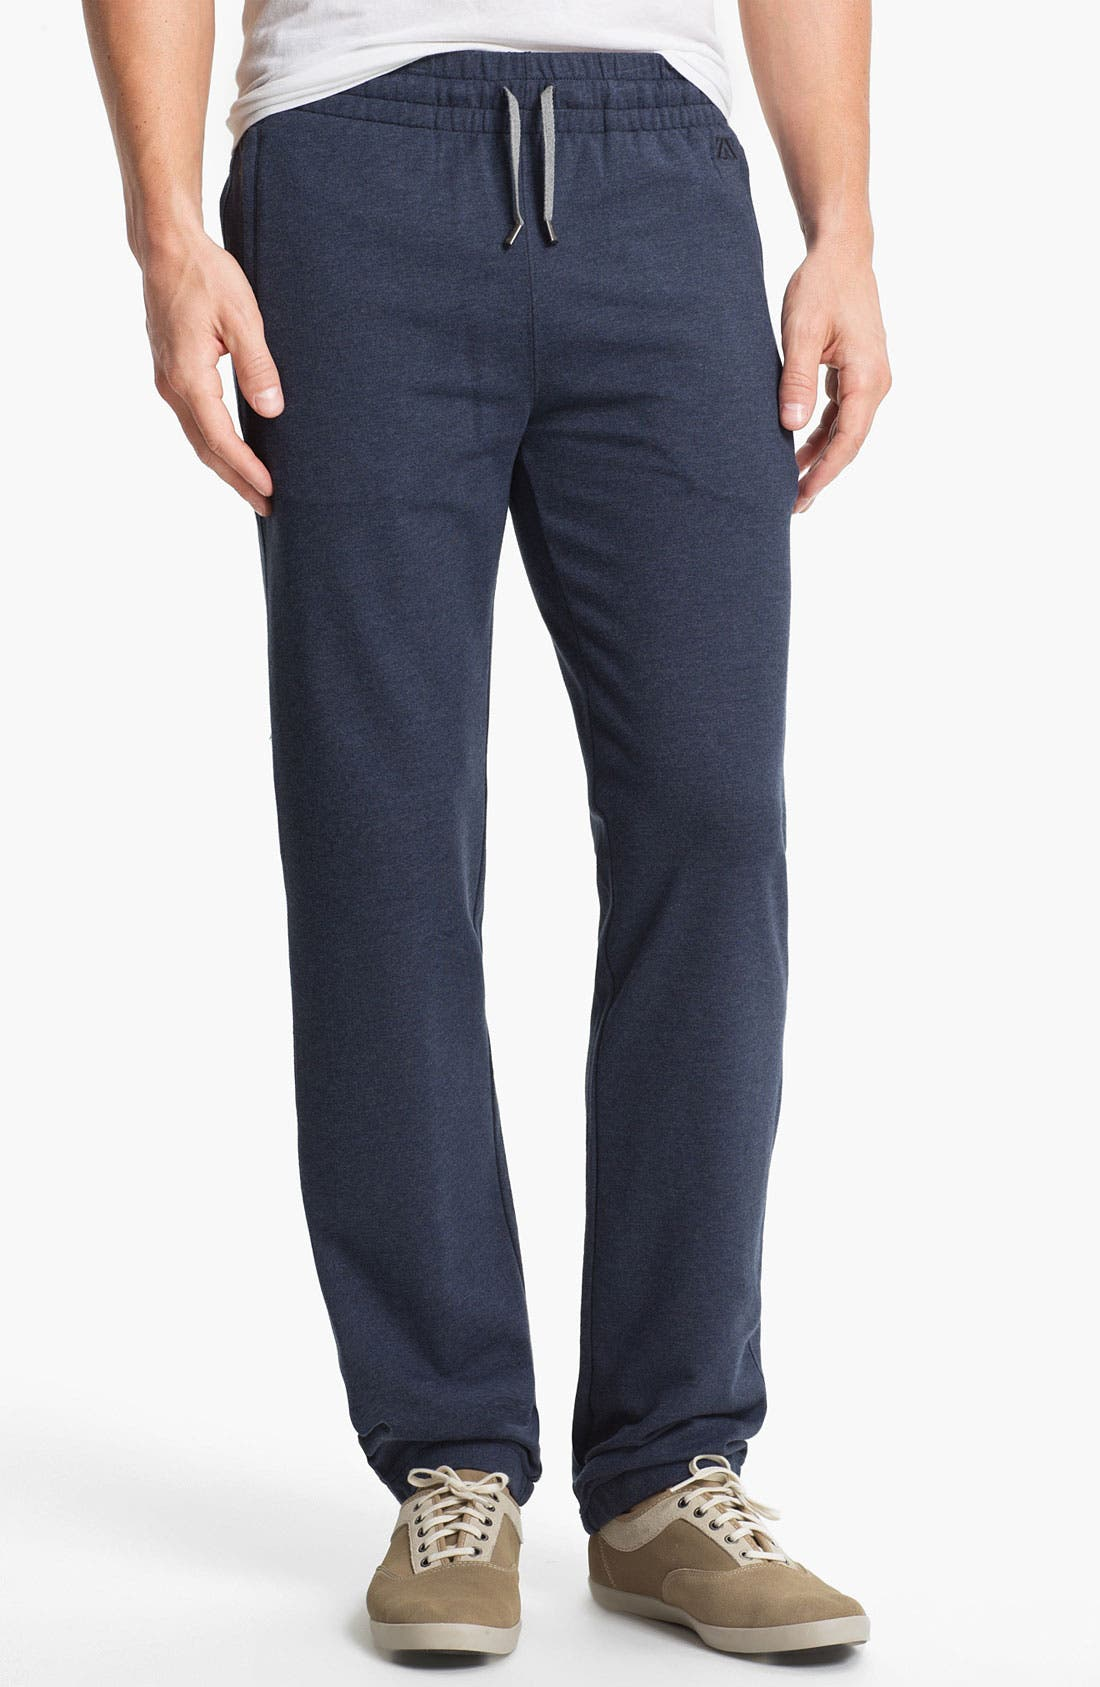 Main Image - Zegna Sport Cotton Blend Lounge Pants